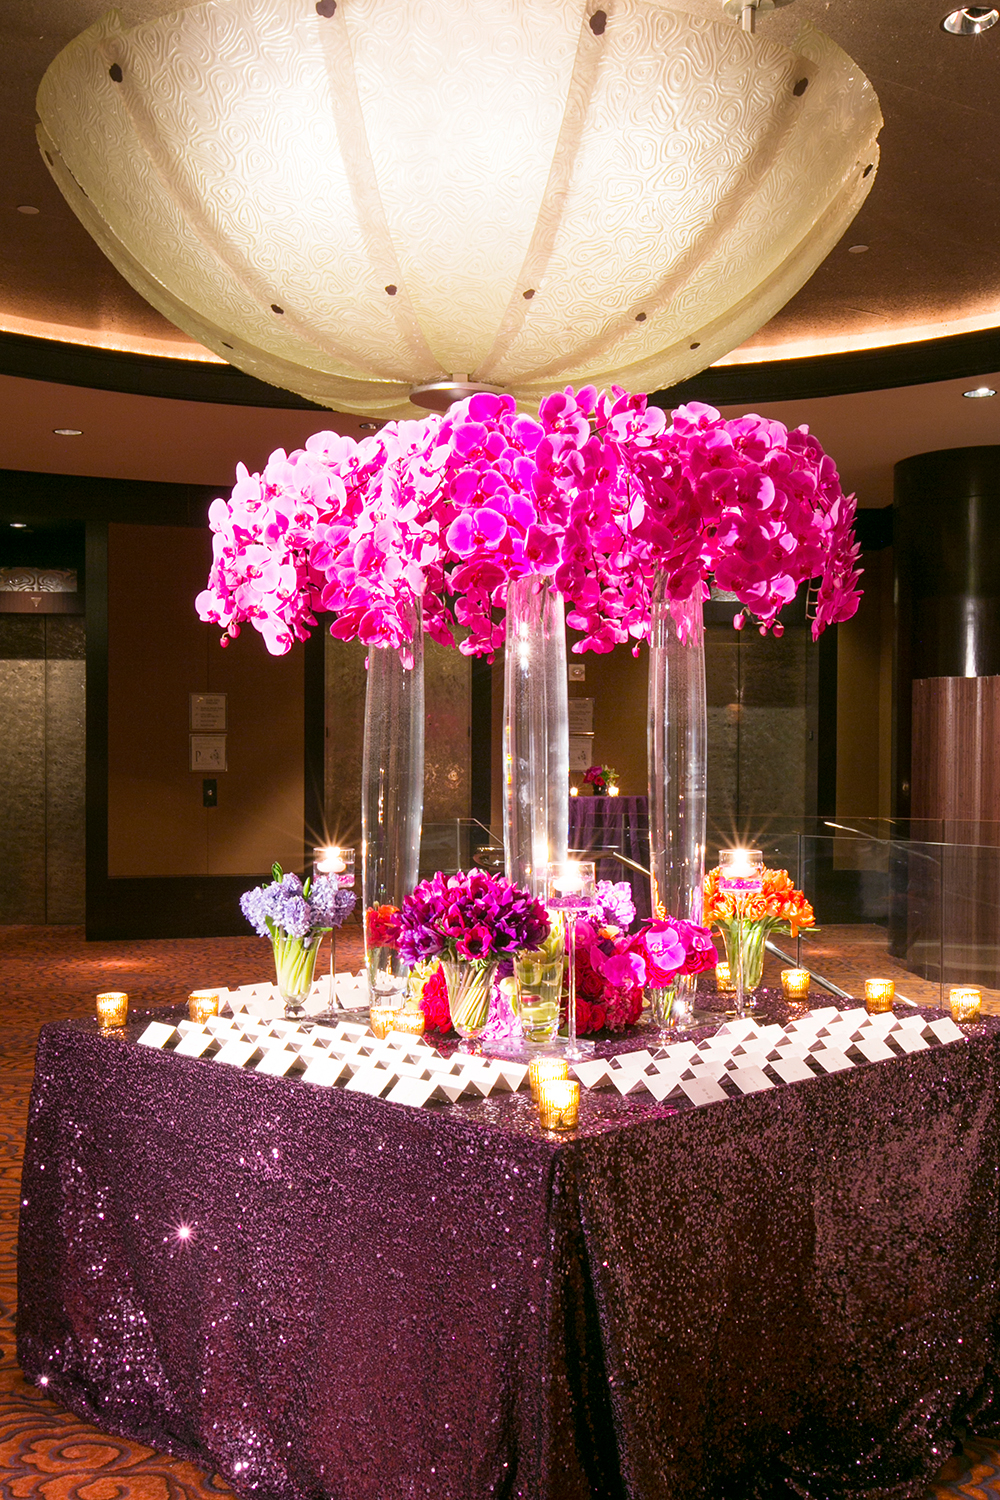 The most beautiful escort card design in NY